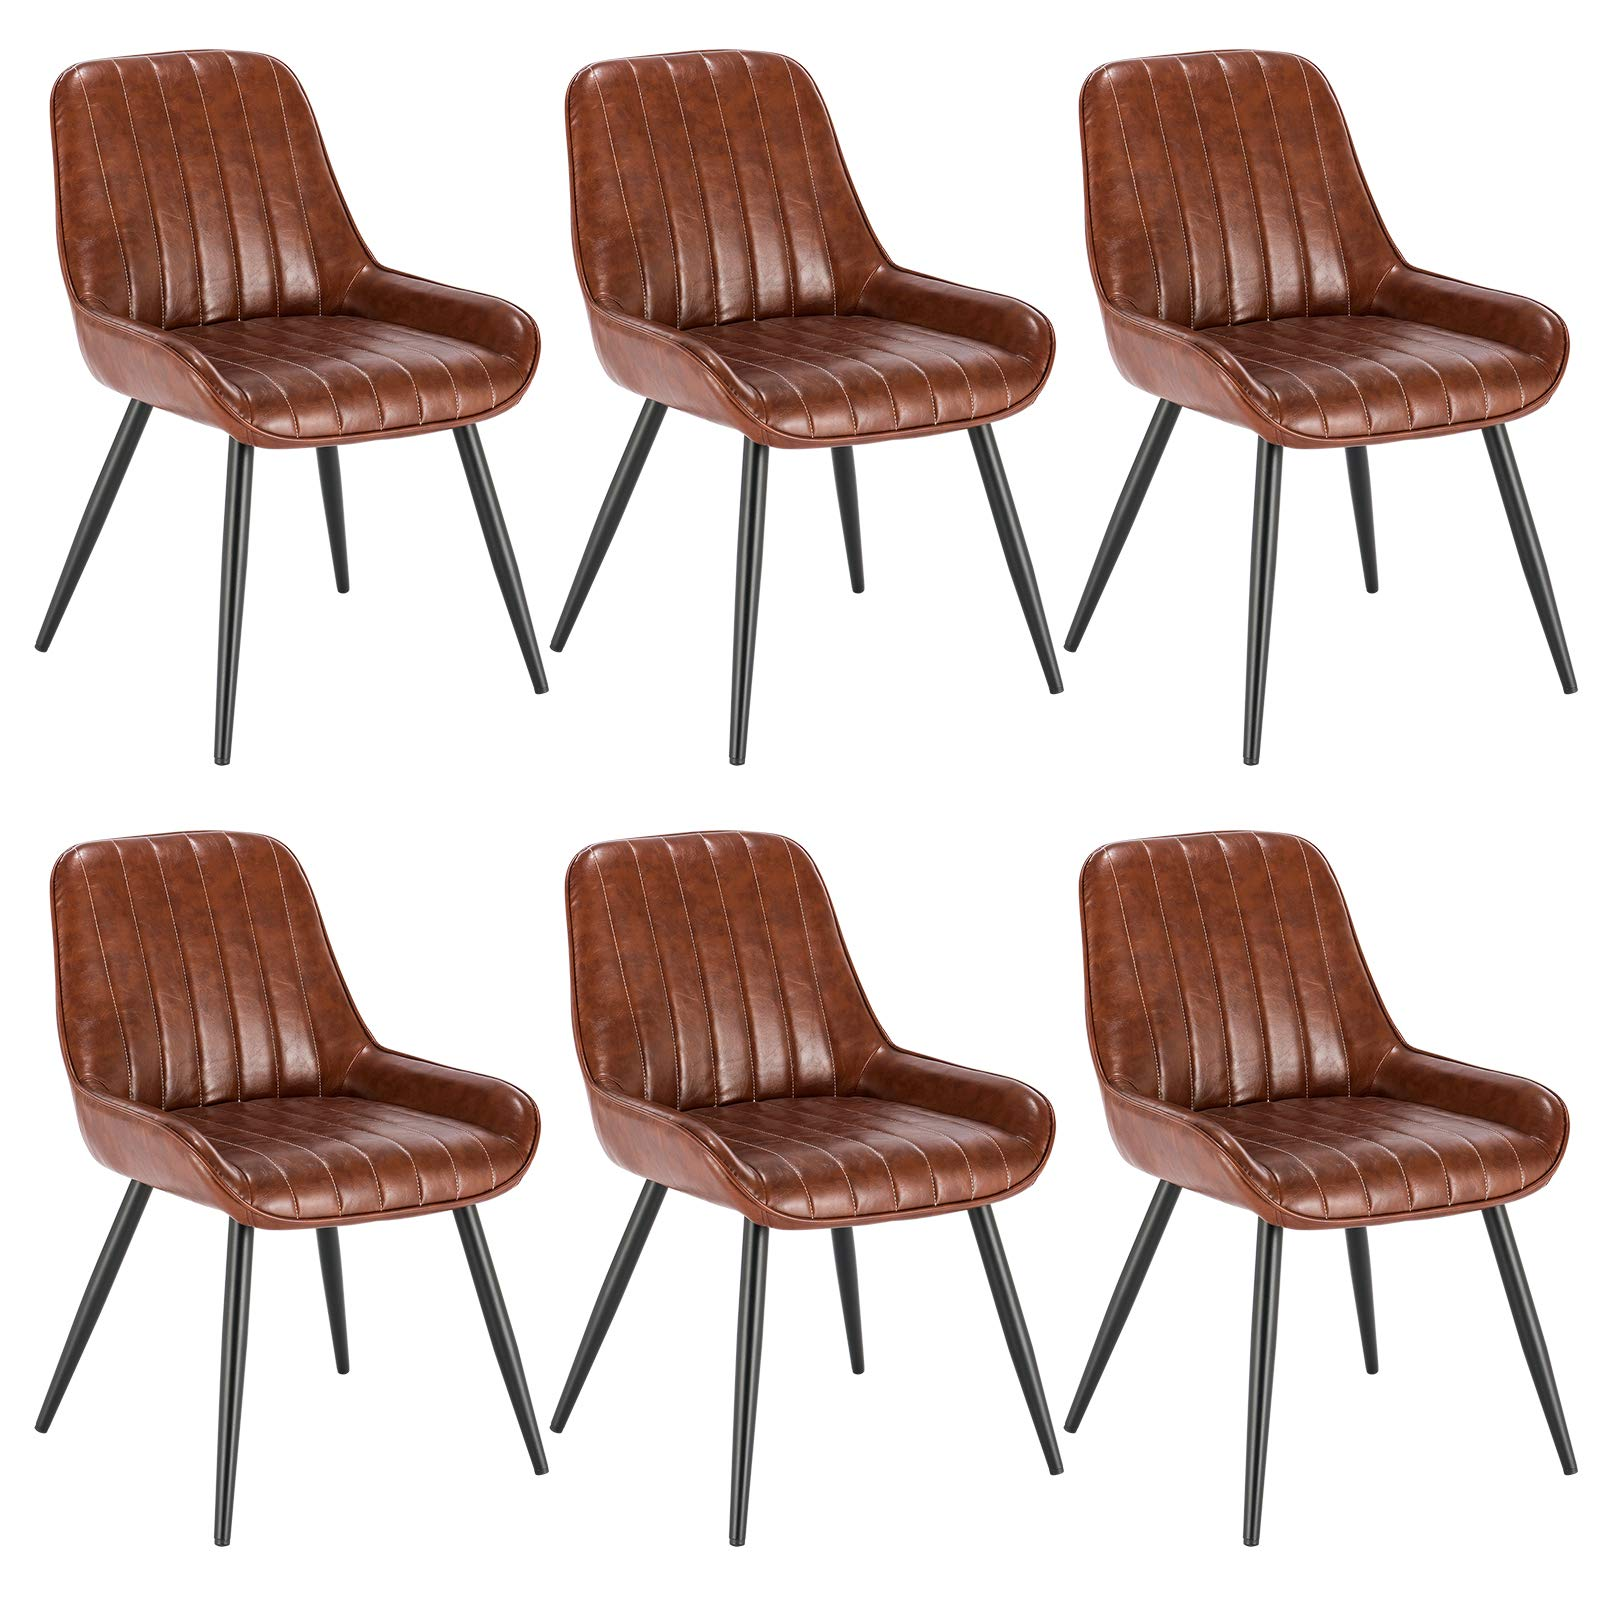 Lestarain Dining Chairs Set of 6 Vintage Kitchen Counter Chairs Lounge Leisure Living Room Corner Chairs With Metal Legs PU Leather Seat and Backrests,Brown